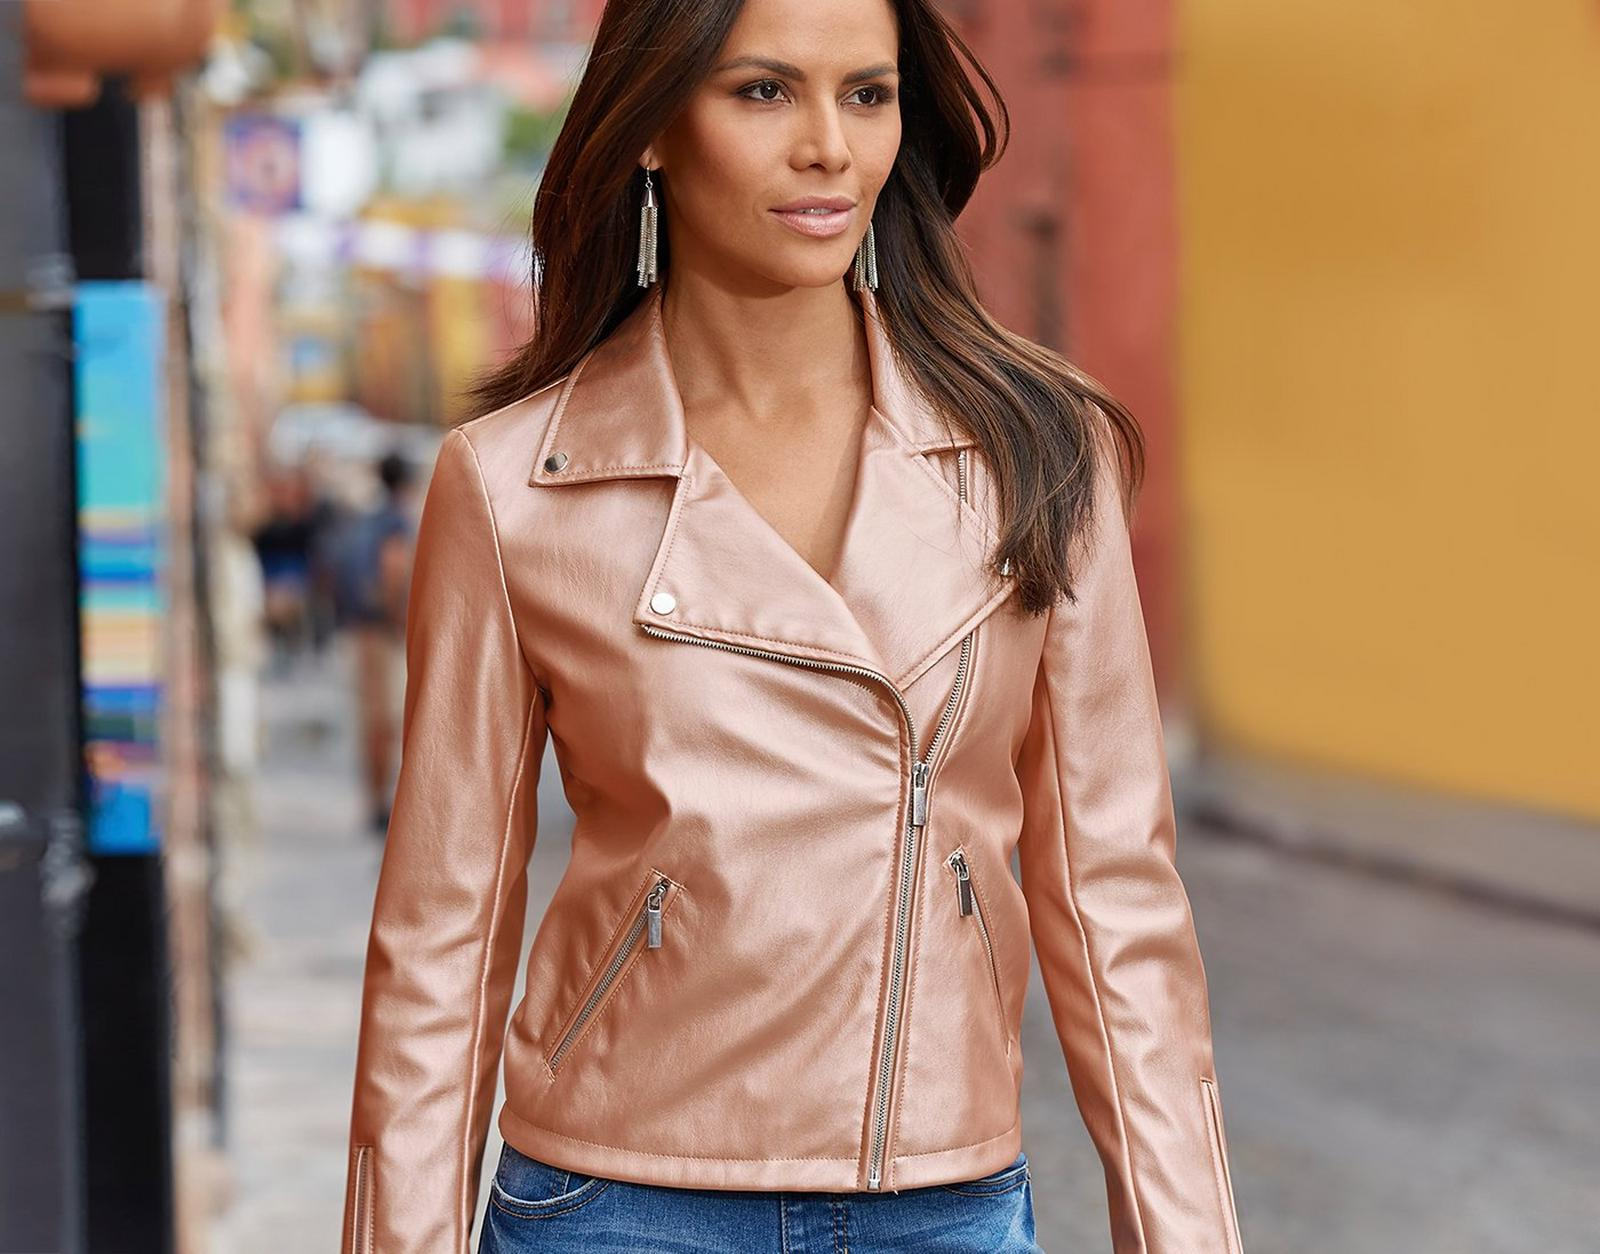 model wearing a rose metallic moto jacket, dangle earrings, and jeans.